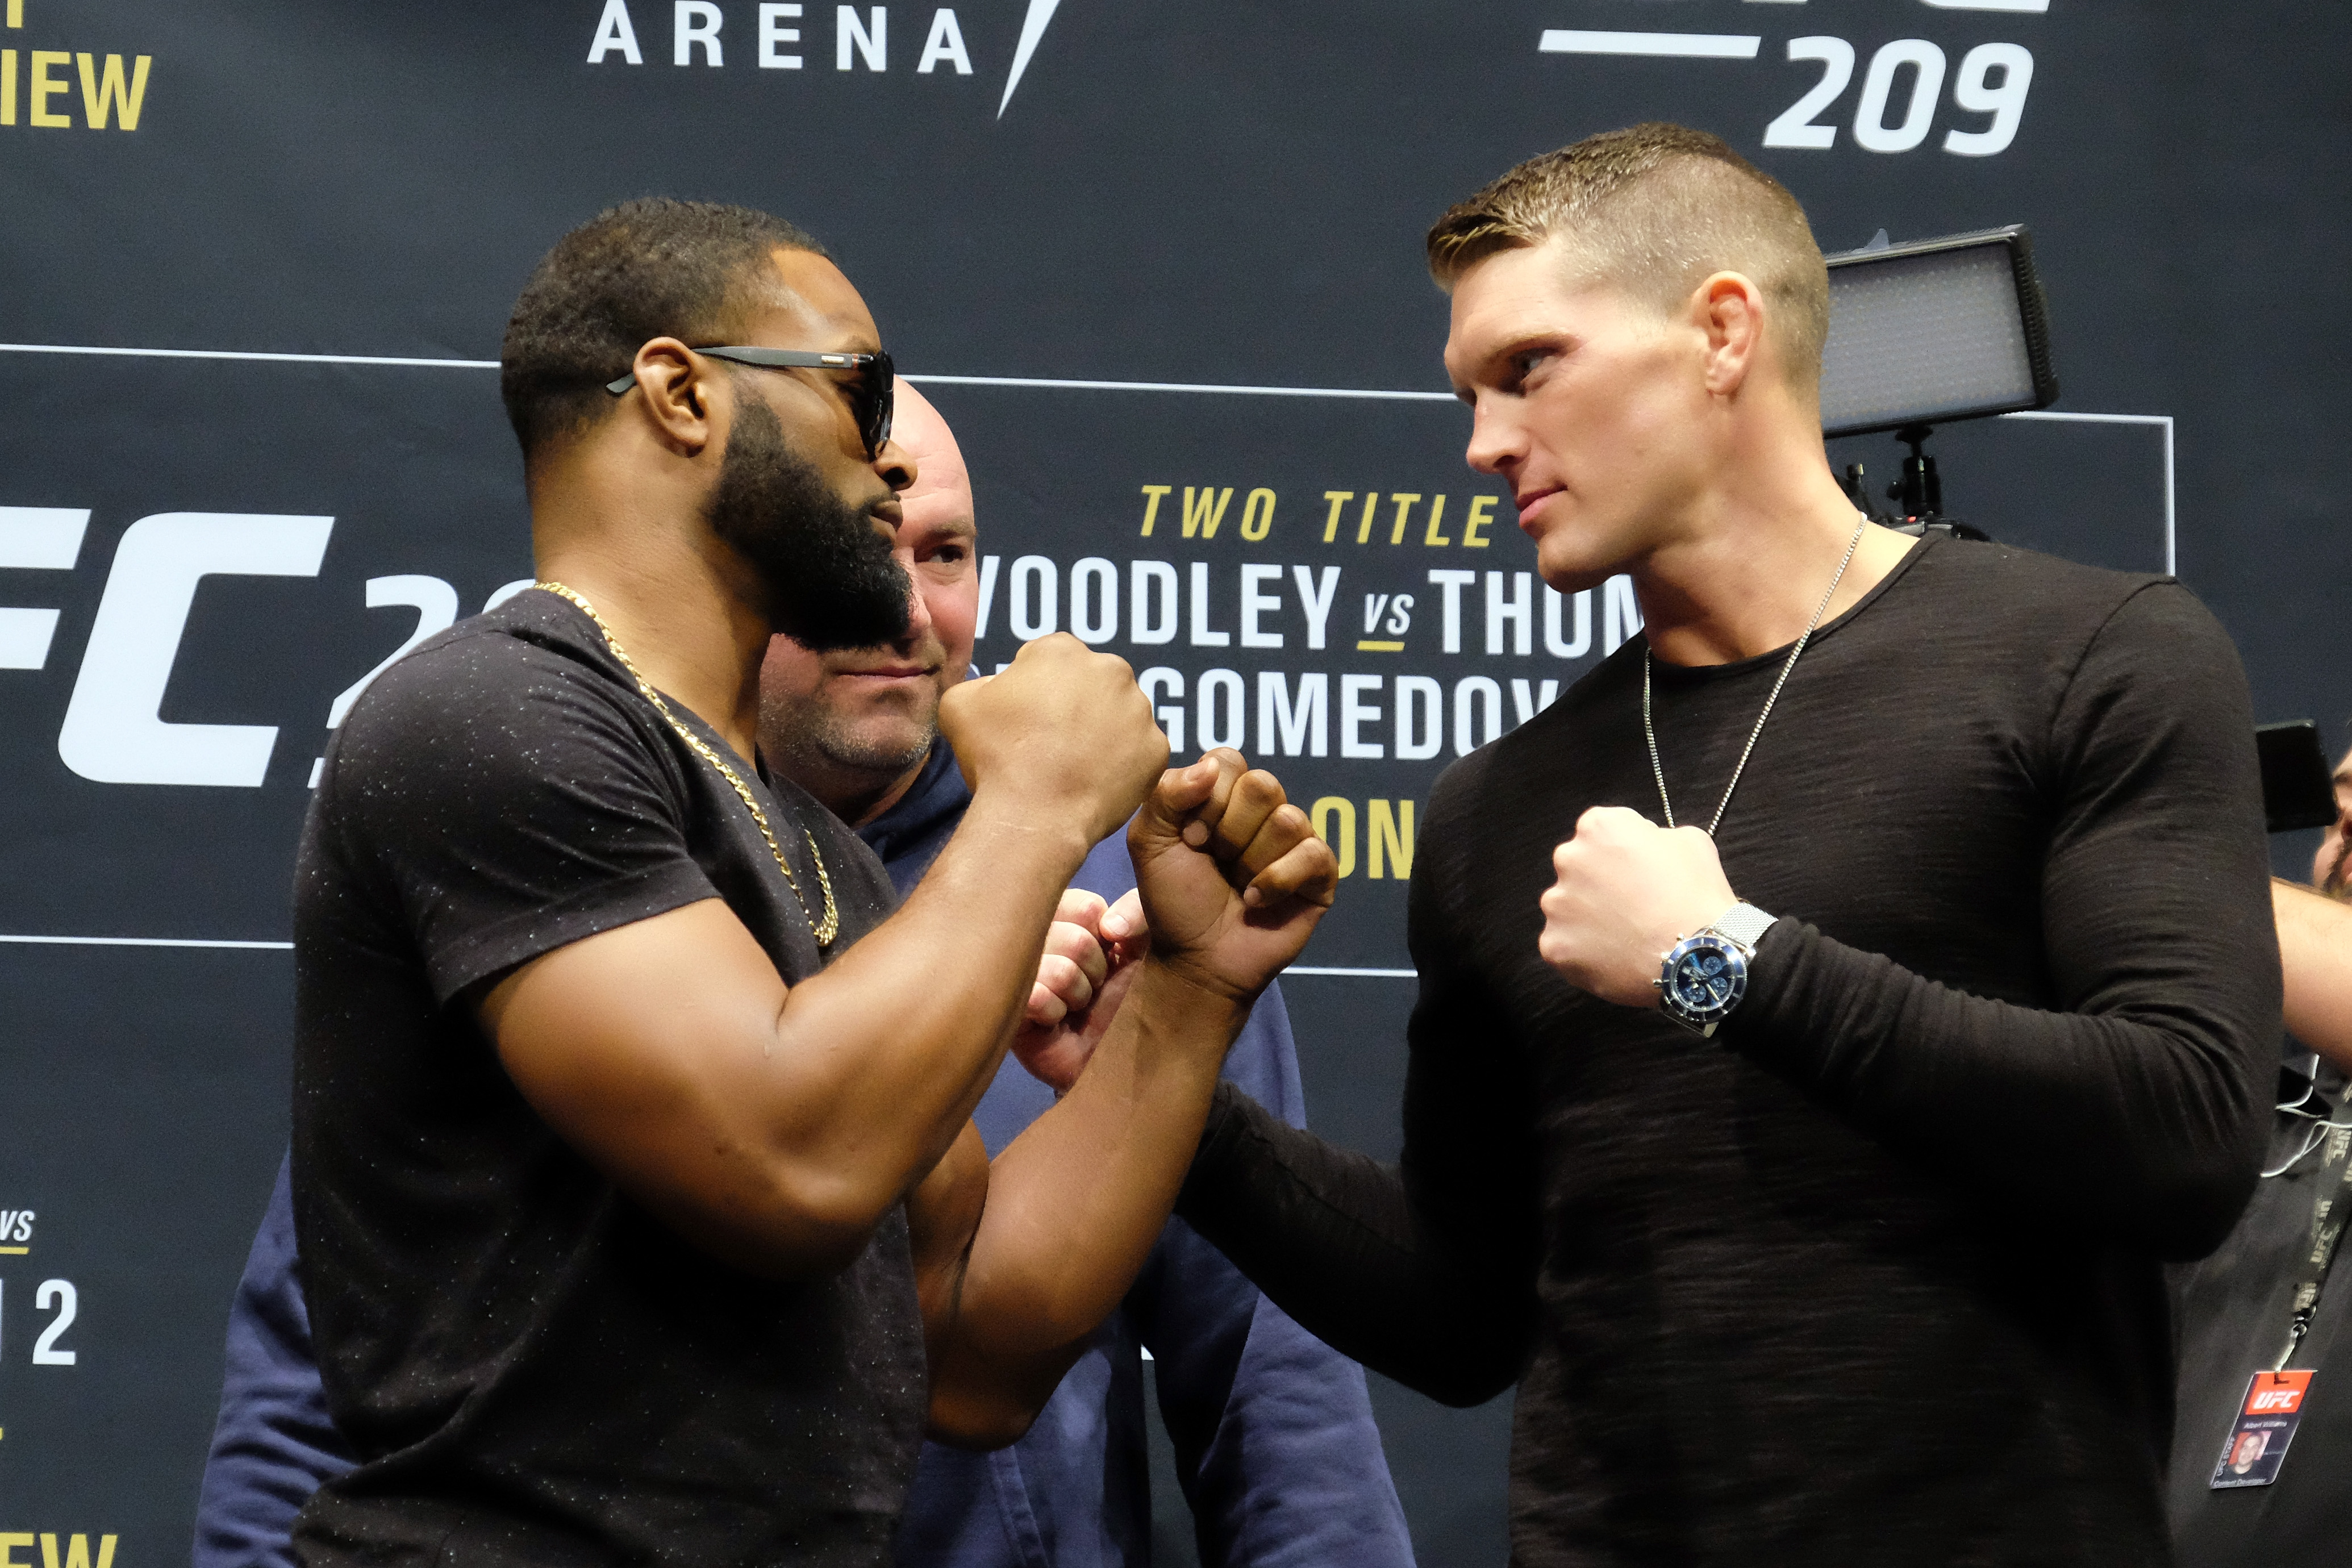 LAS VEGAS, NV - JANUARY 19: (L-R) UFC Welterweight Champion Tyron Woodley and No. 1 UFC welterweight contender Stephen Thompson face off during the UFC 209 Ultimate Media Day event inside The Park Theater on January 19, 2017 in Las Vegas, Nevada. (Photo by Juan Cardenas/Zuffa LLC/Zuffa LLC via Getty Images)